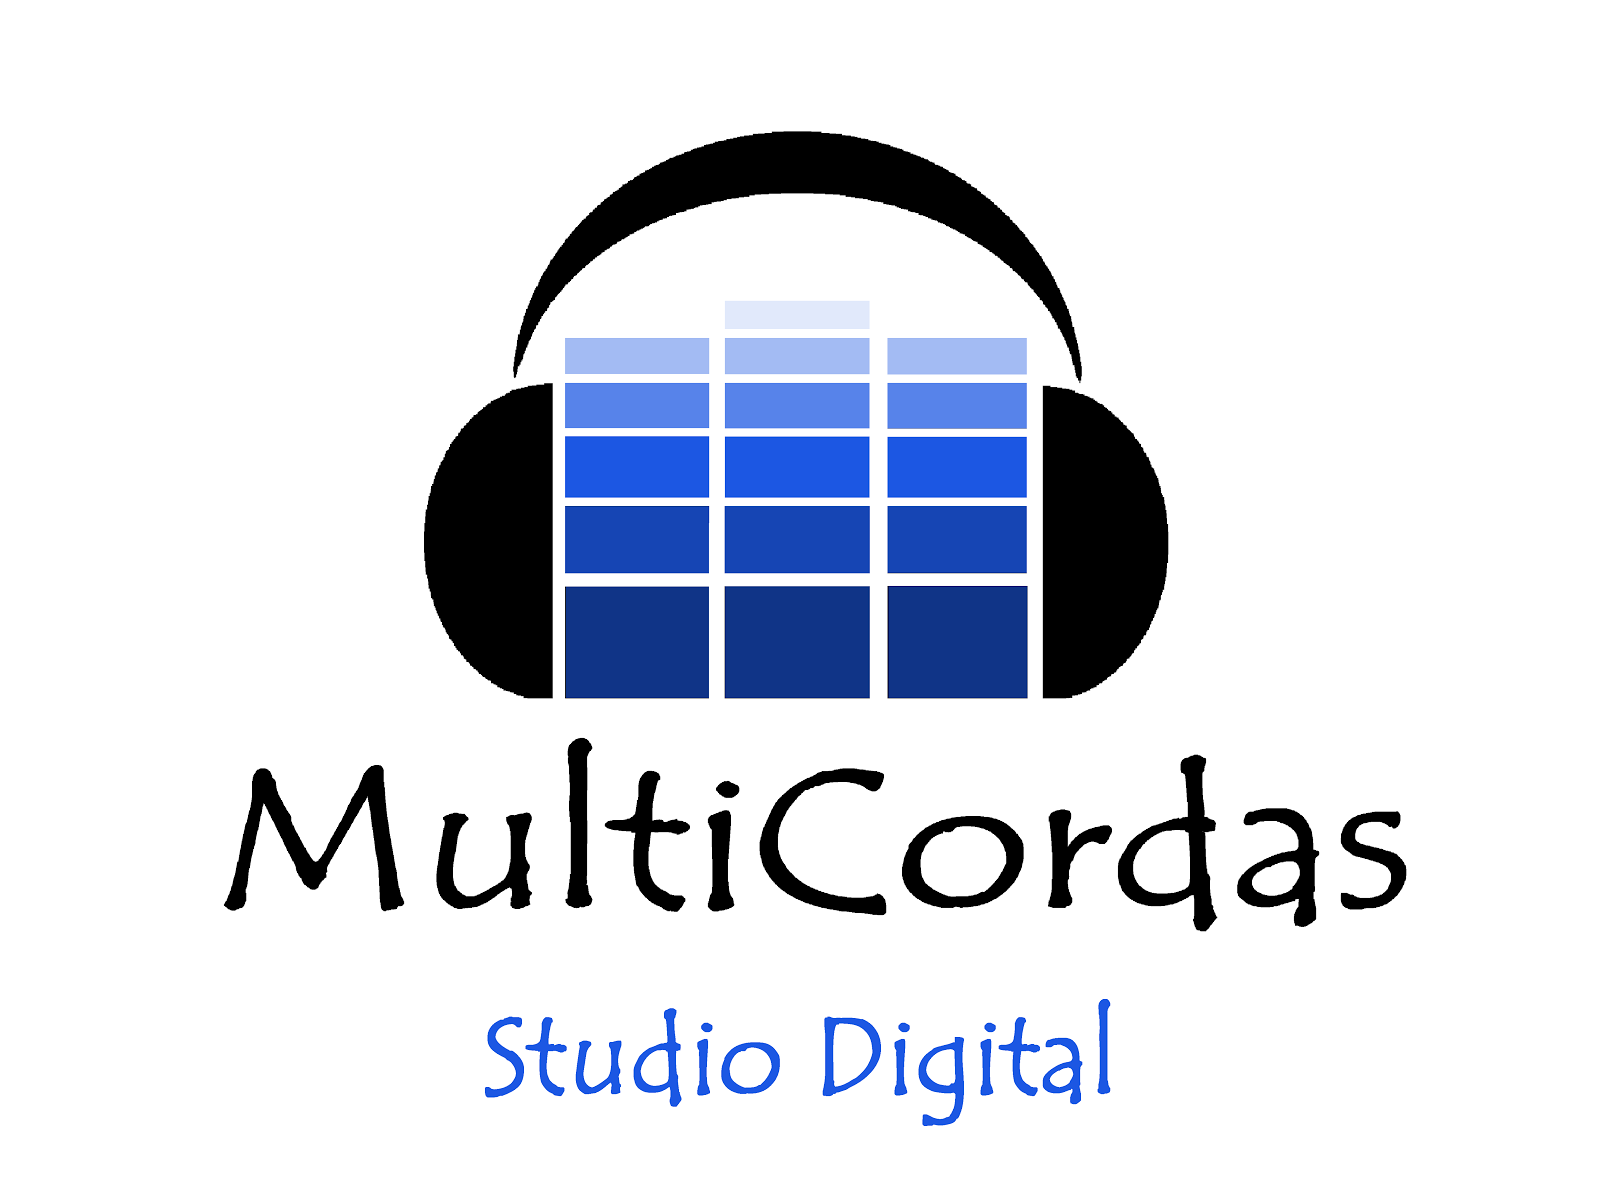 Studio Multicordas